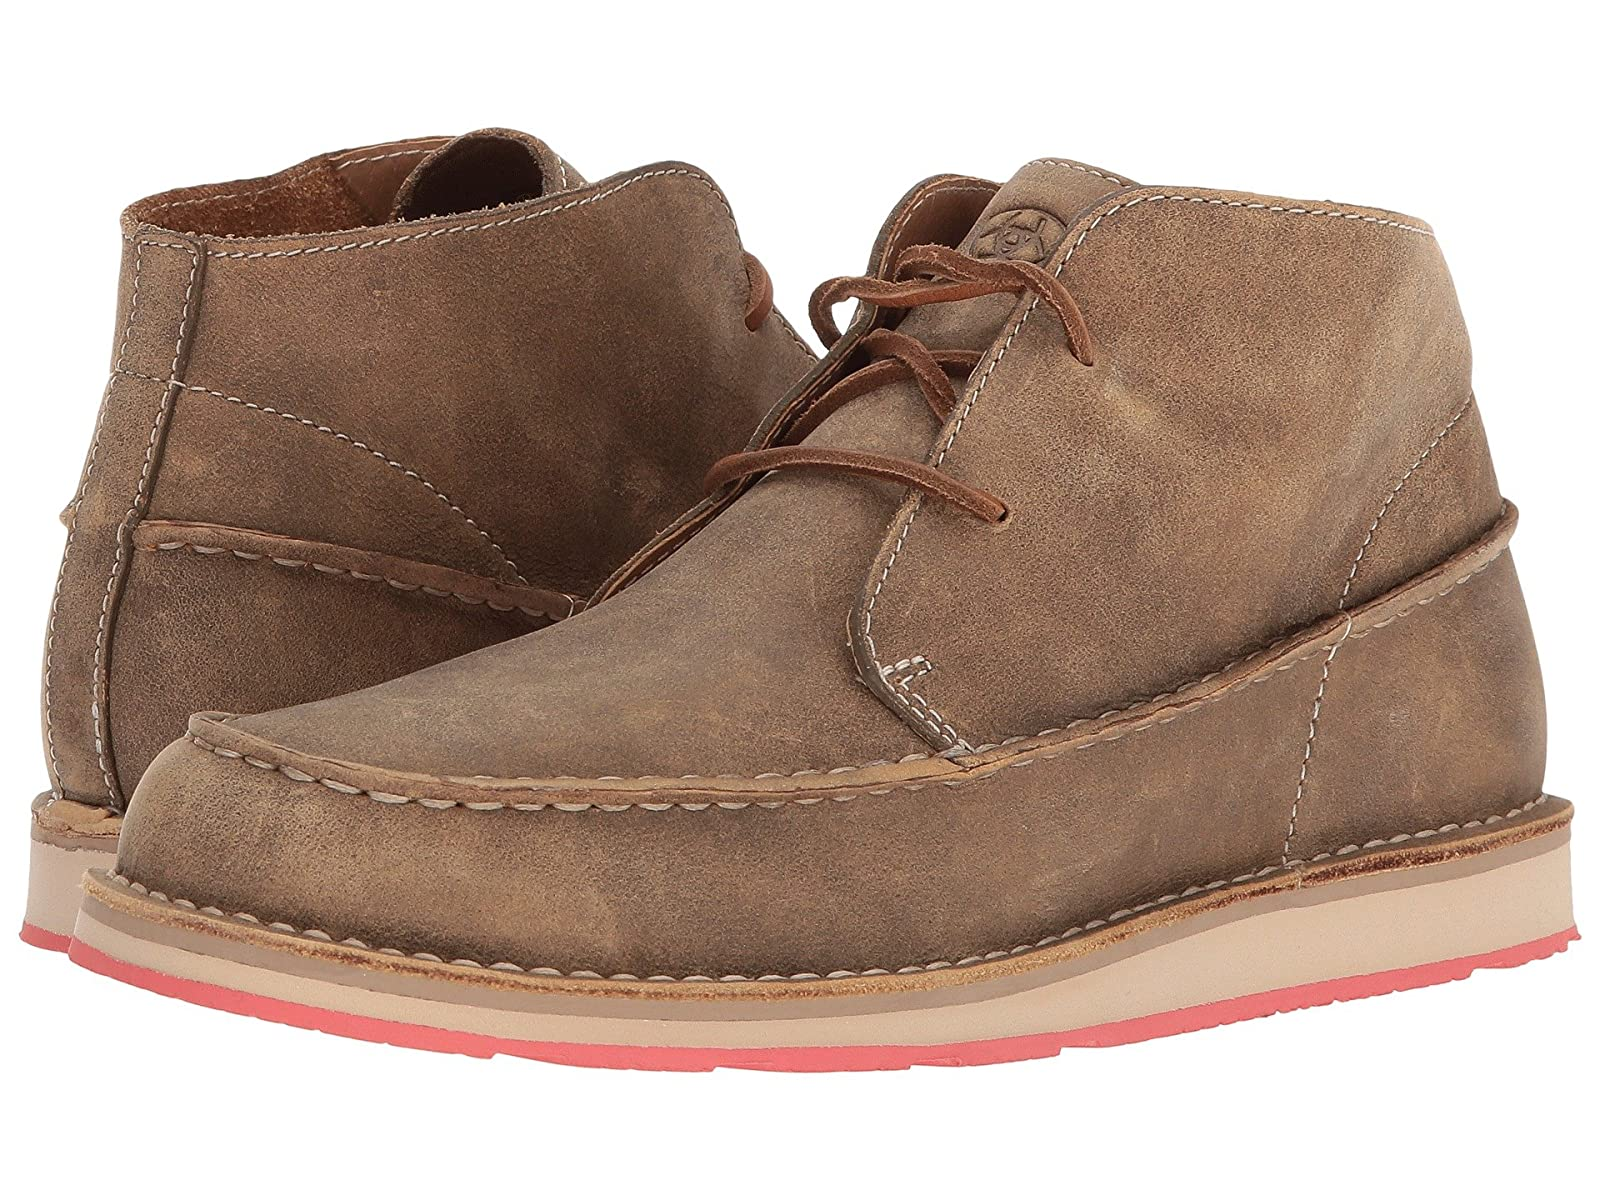 Ariat Cruiser LaceSelling fashionable and eye-catching shoes